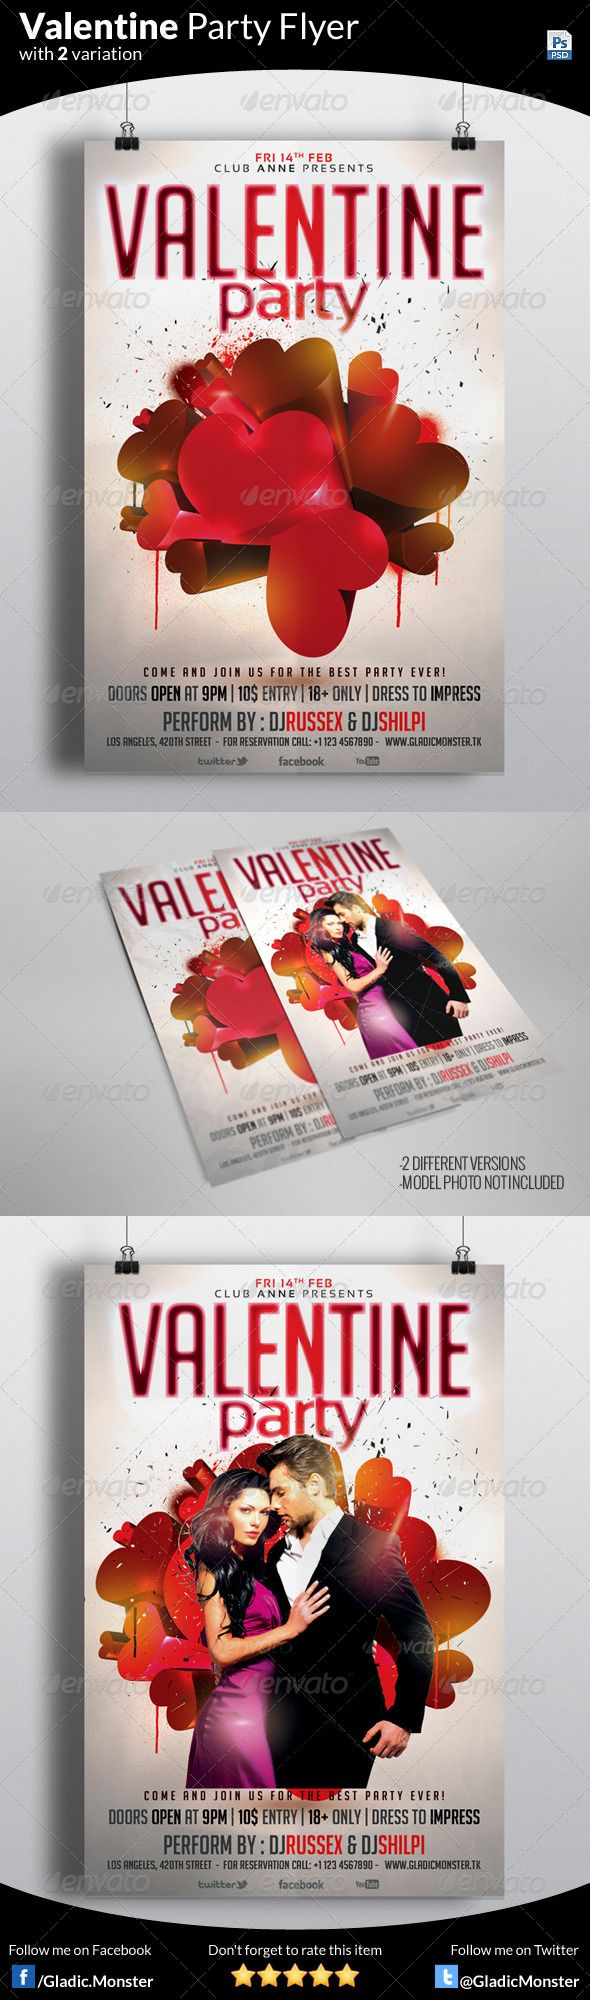 DOWNLOAD THIS Valentine Party Flyer FROM - http://graphicriver.net/item/valentine-party-flyer/6567889?ref=GladicMonster